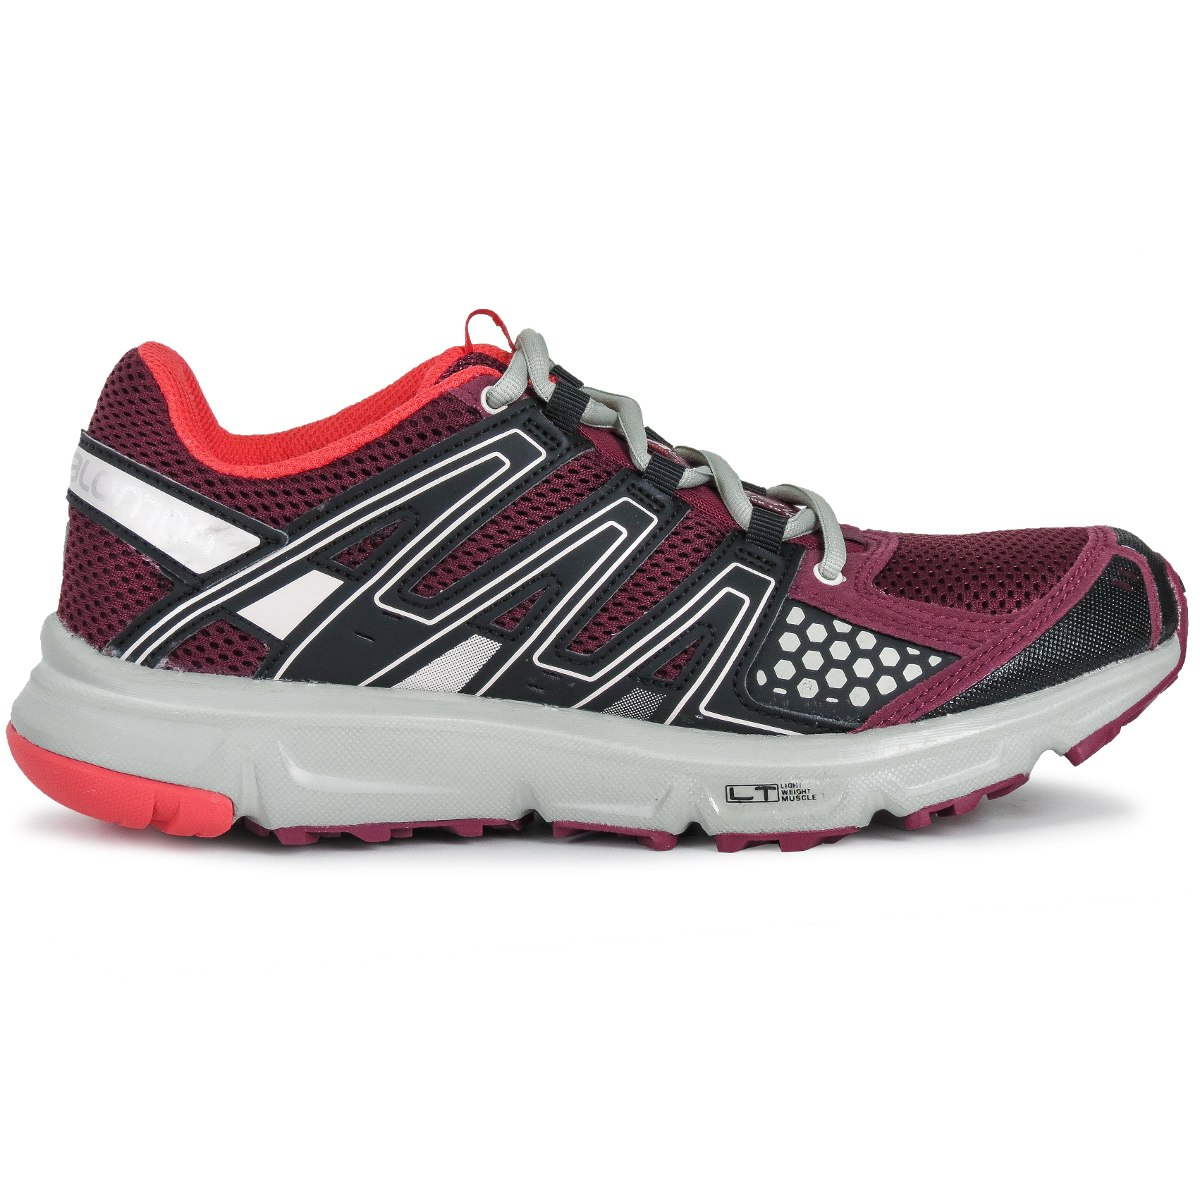 Zapatillas - Salomon Zapatillas Running Salomon Xr Shift W Trail